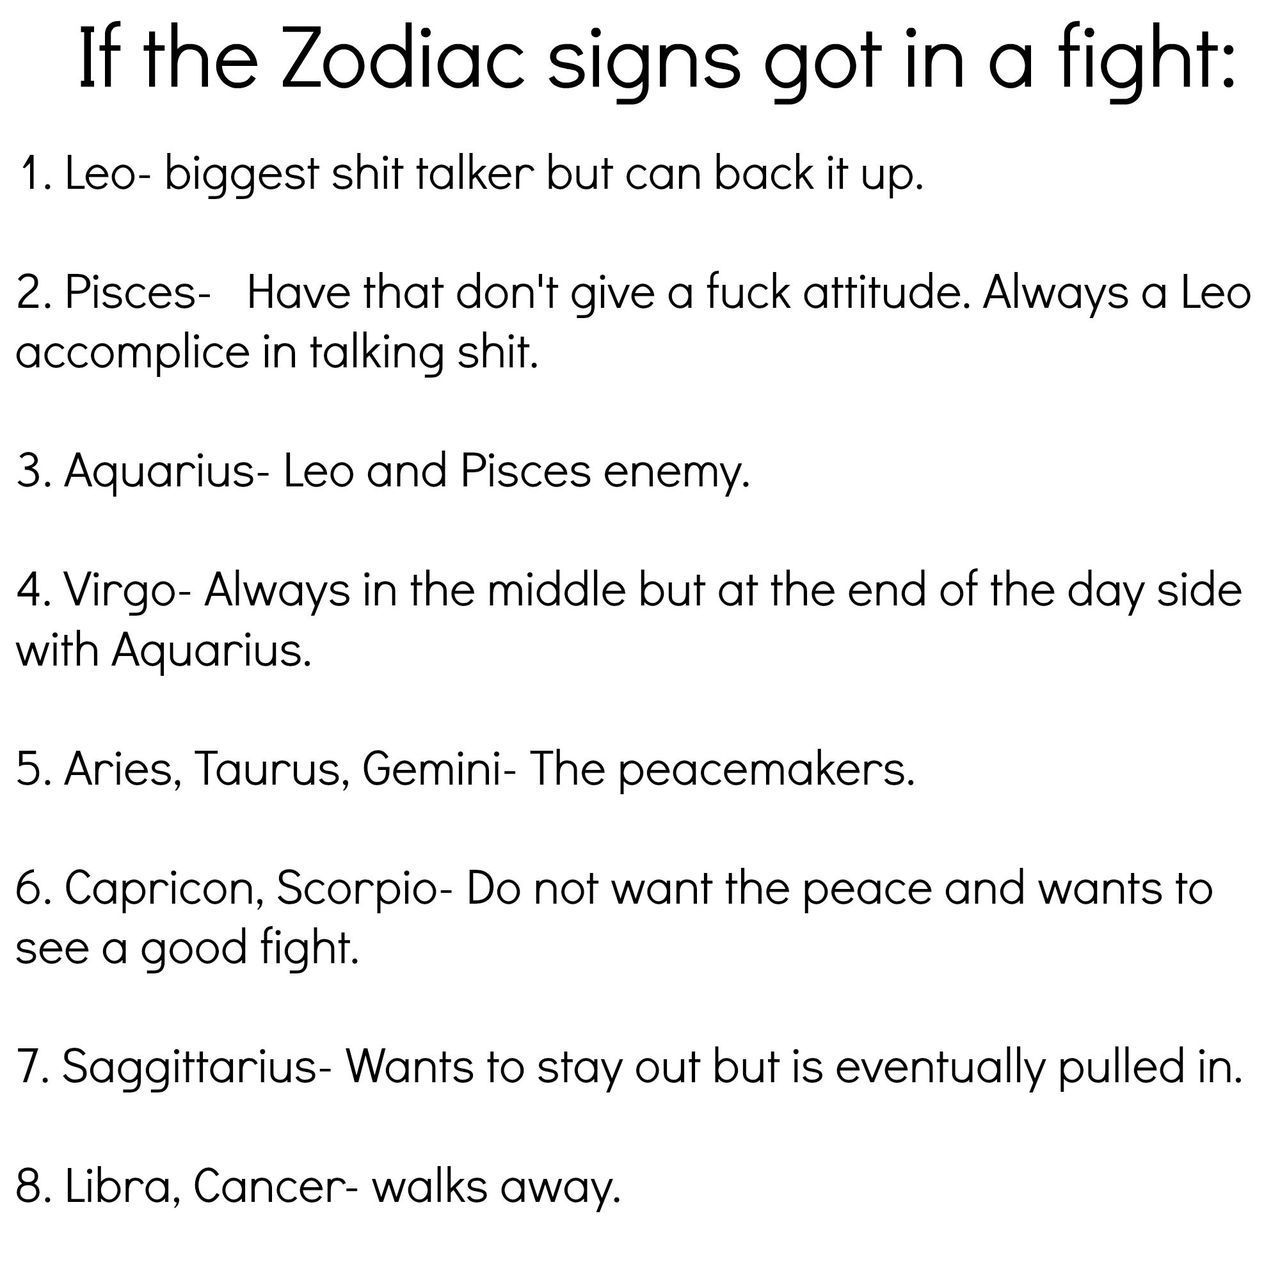 Capricorn true   but i wanna also fight good if im involved but it